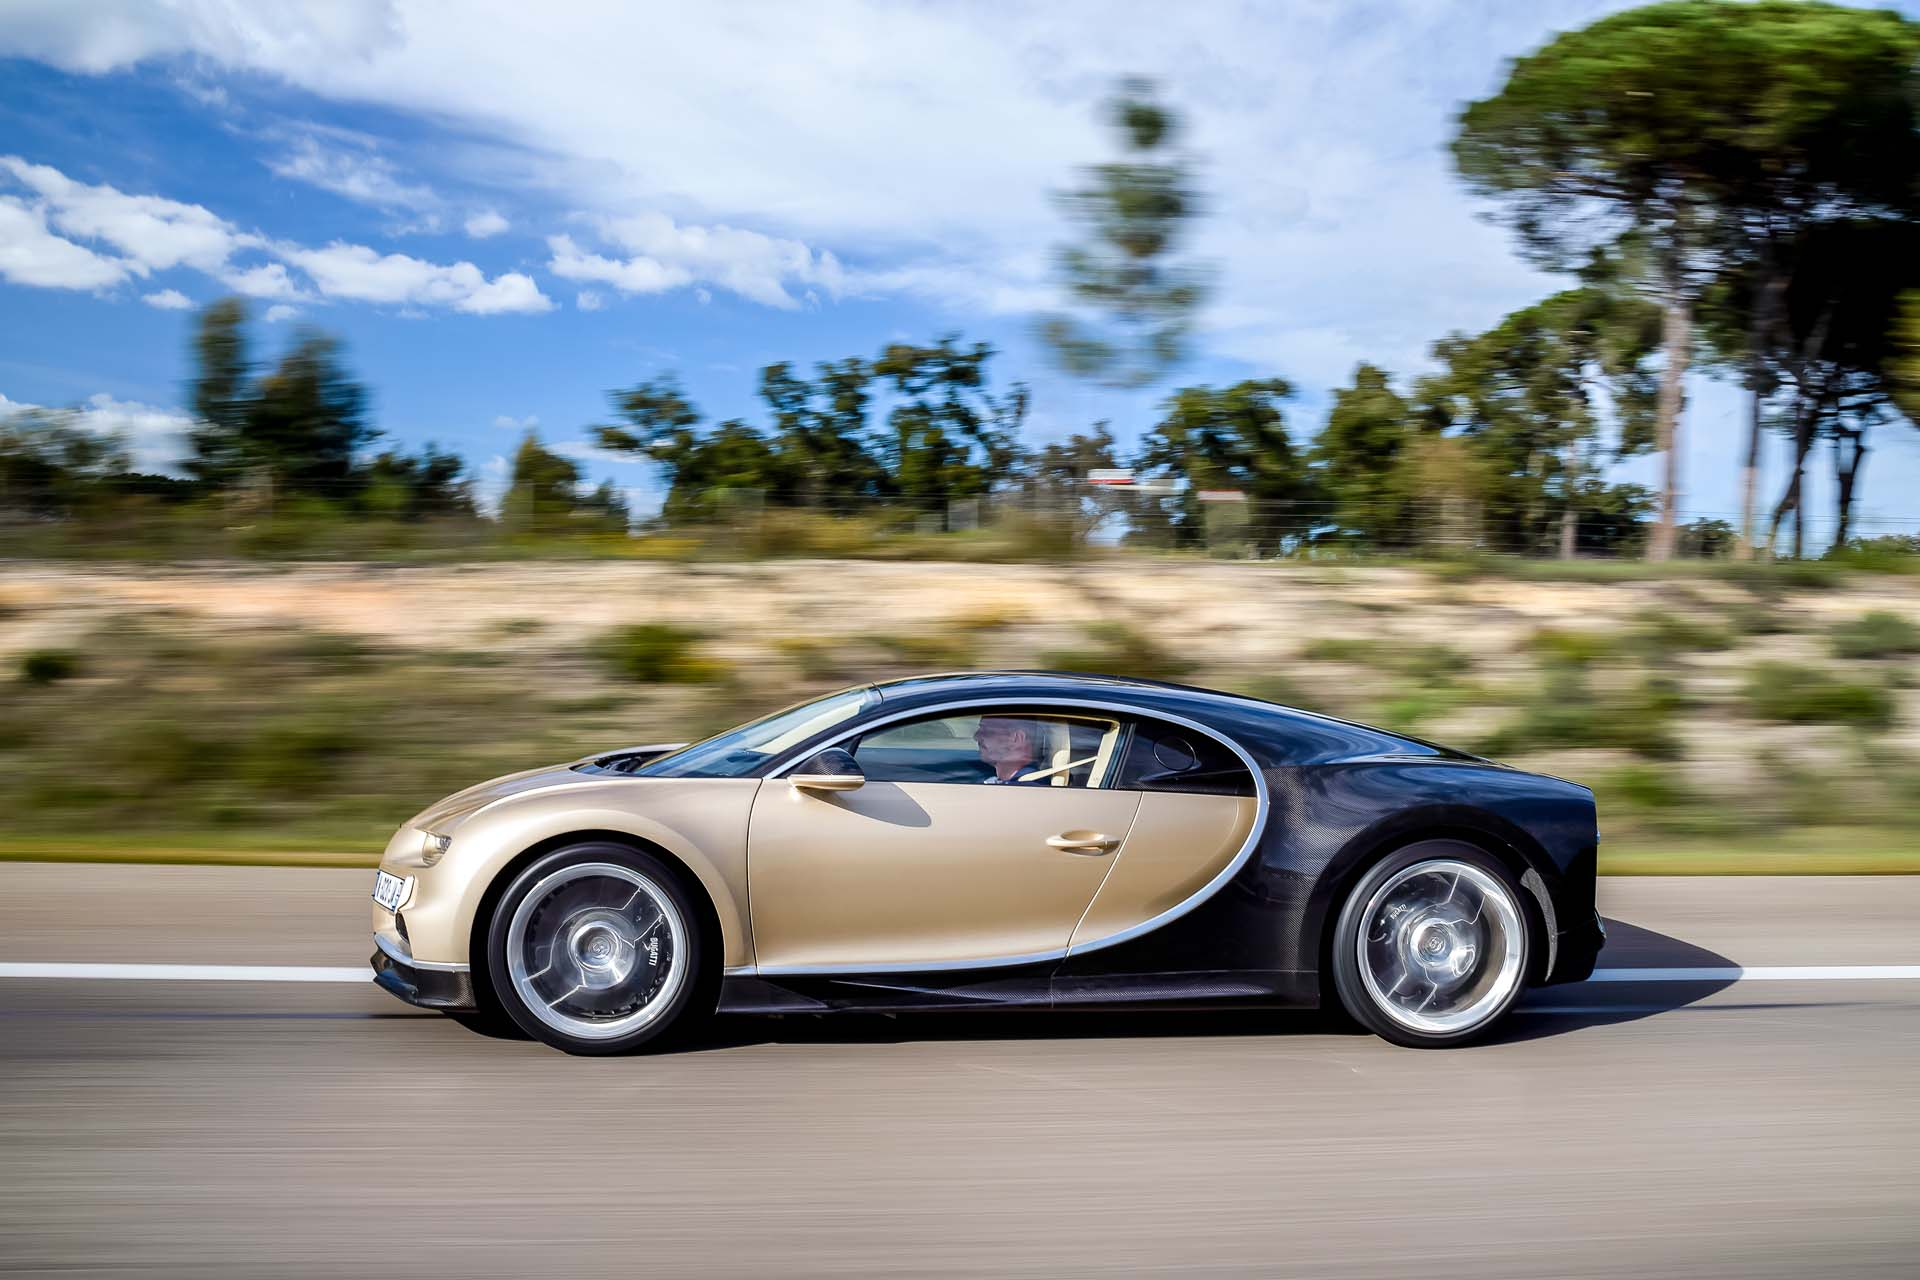 bugatti chiron fuel economy ratings better than veyron. Black Bedroom Furniture Sets. Home Design Ideas